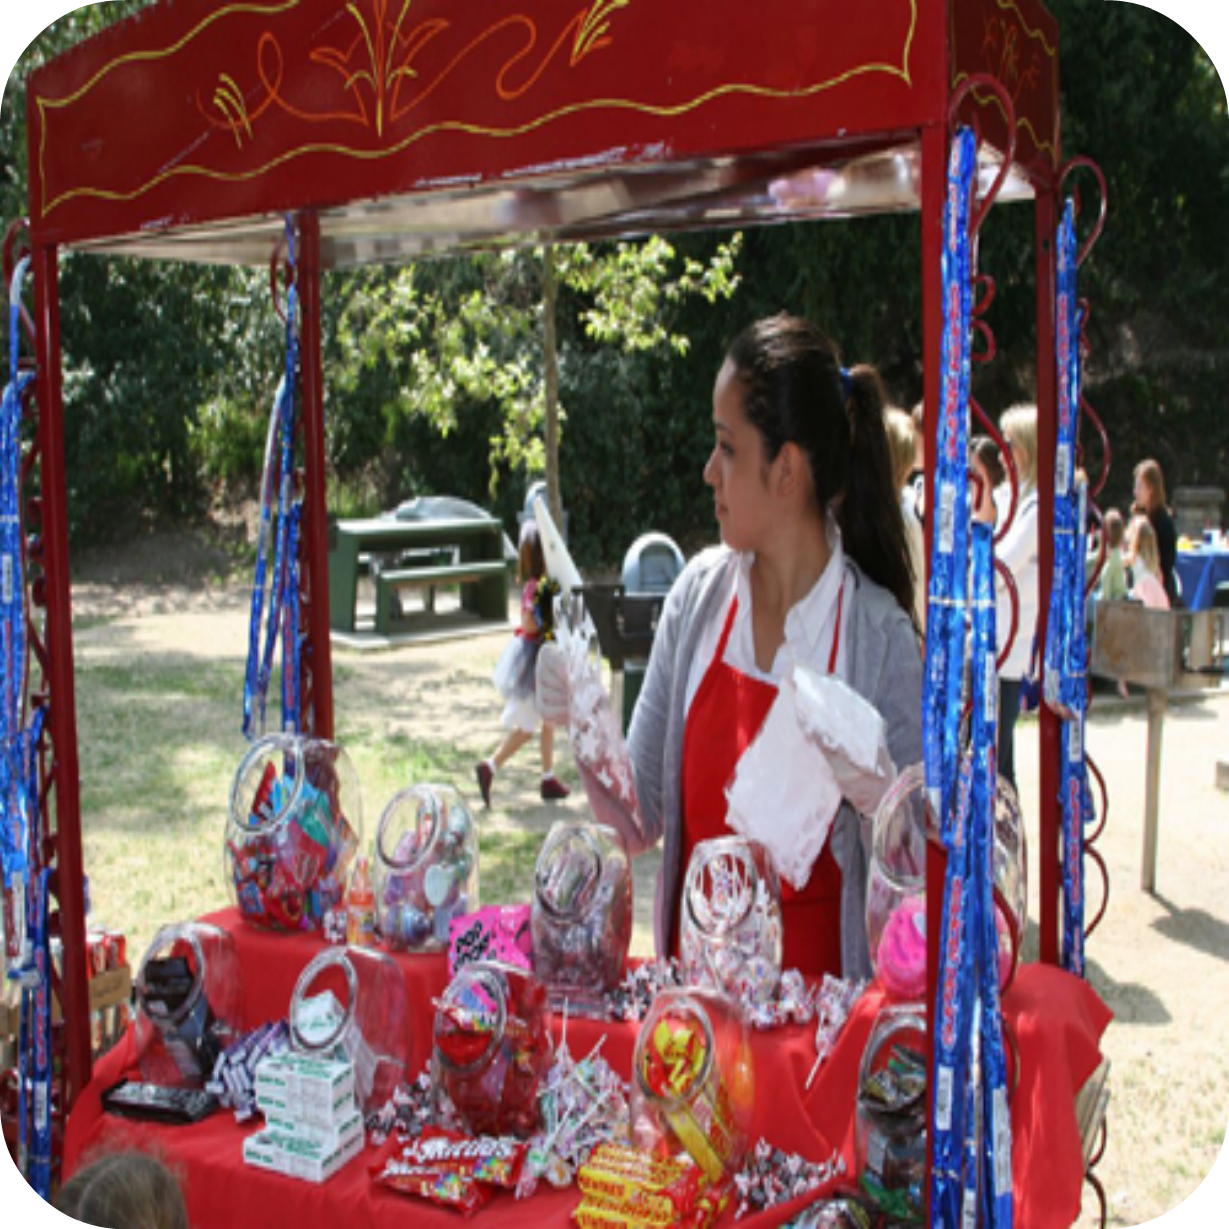 Candy Cart in Los Angeles, CA